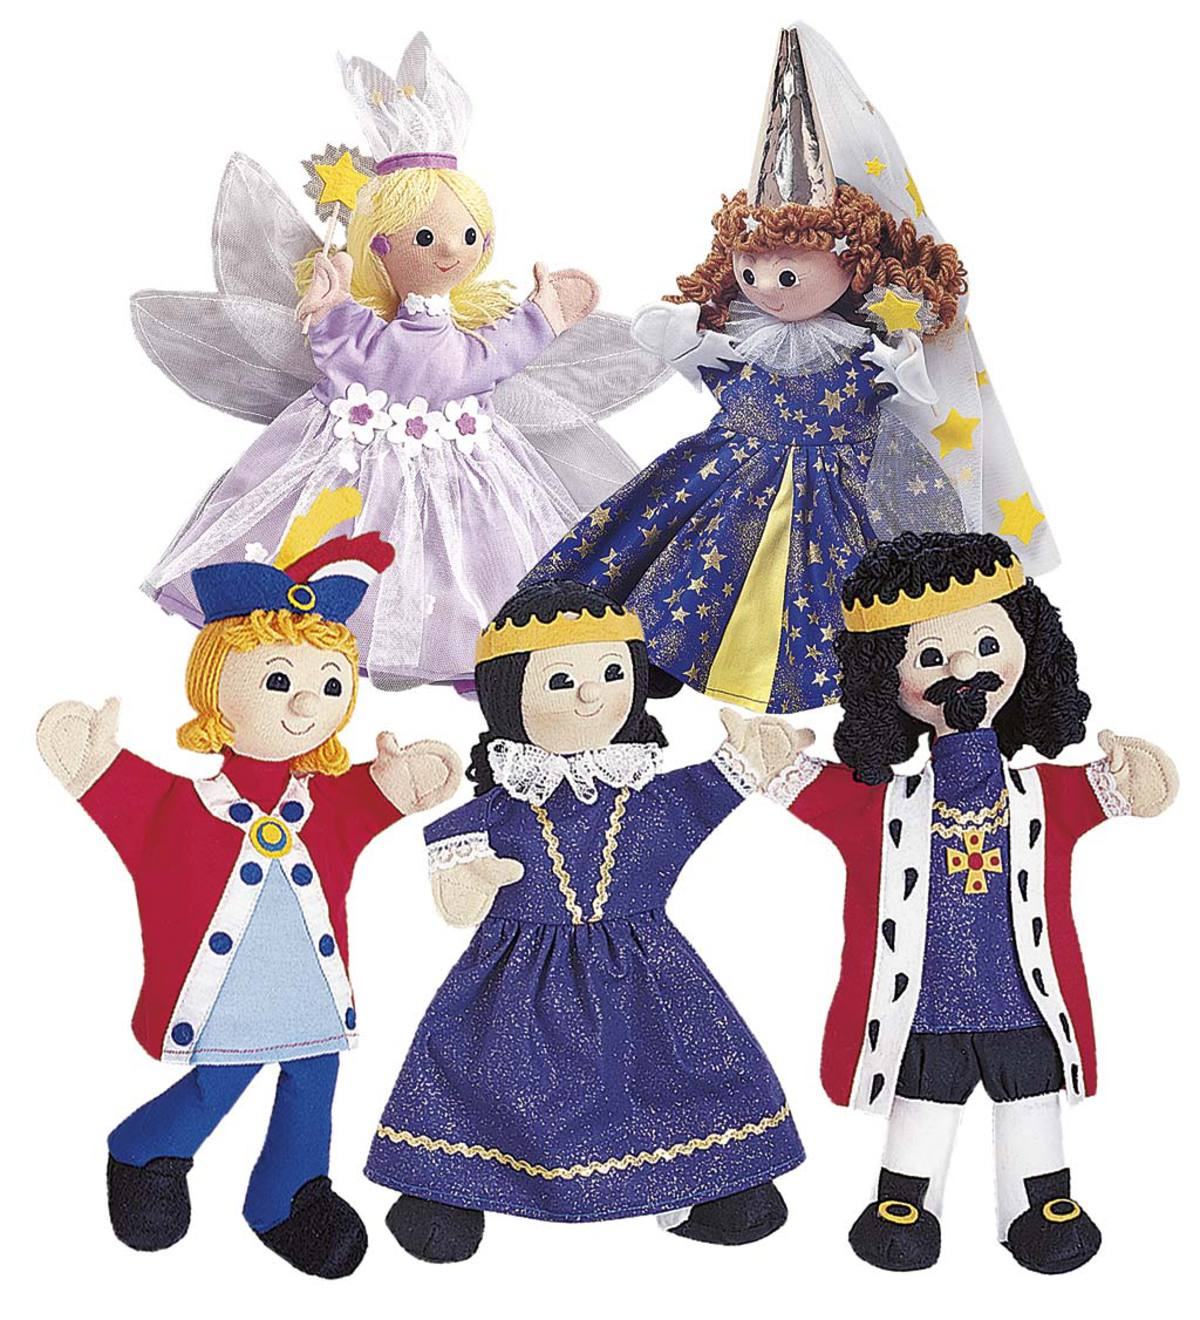 Set of Five Handmade Puppets